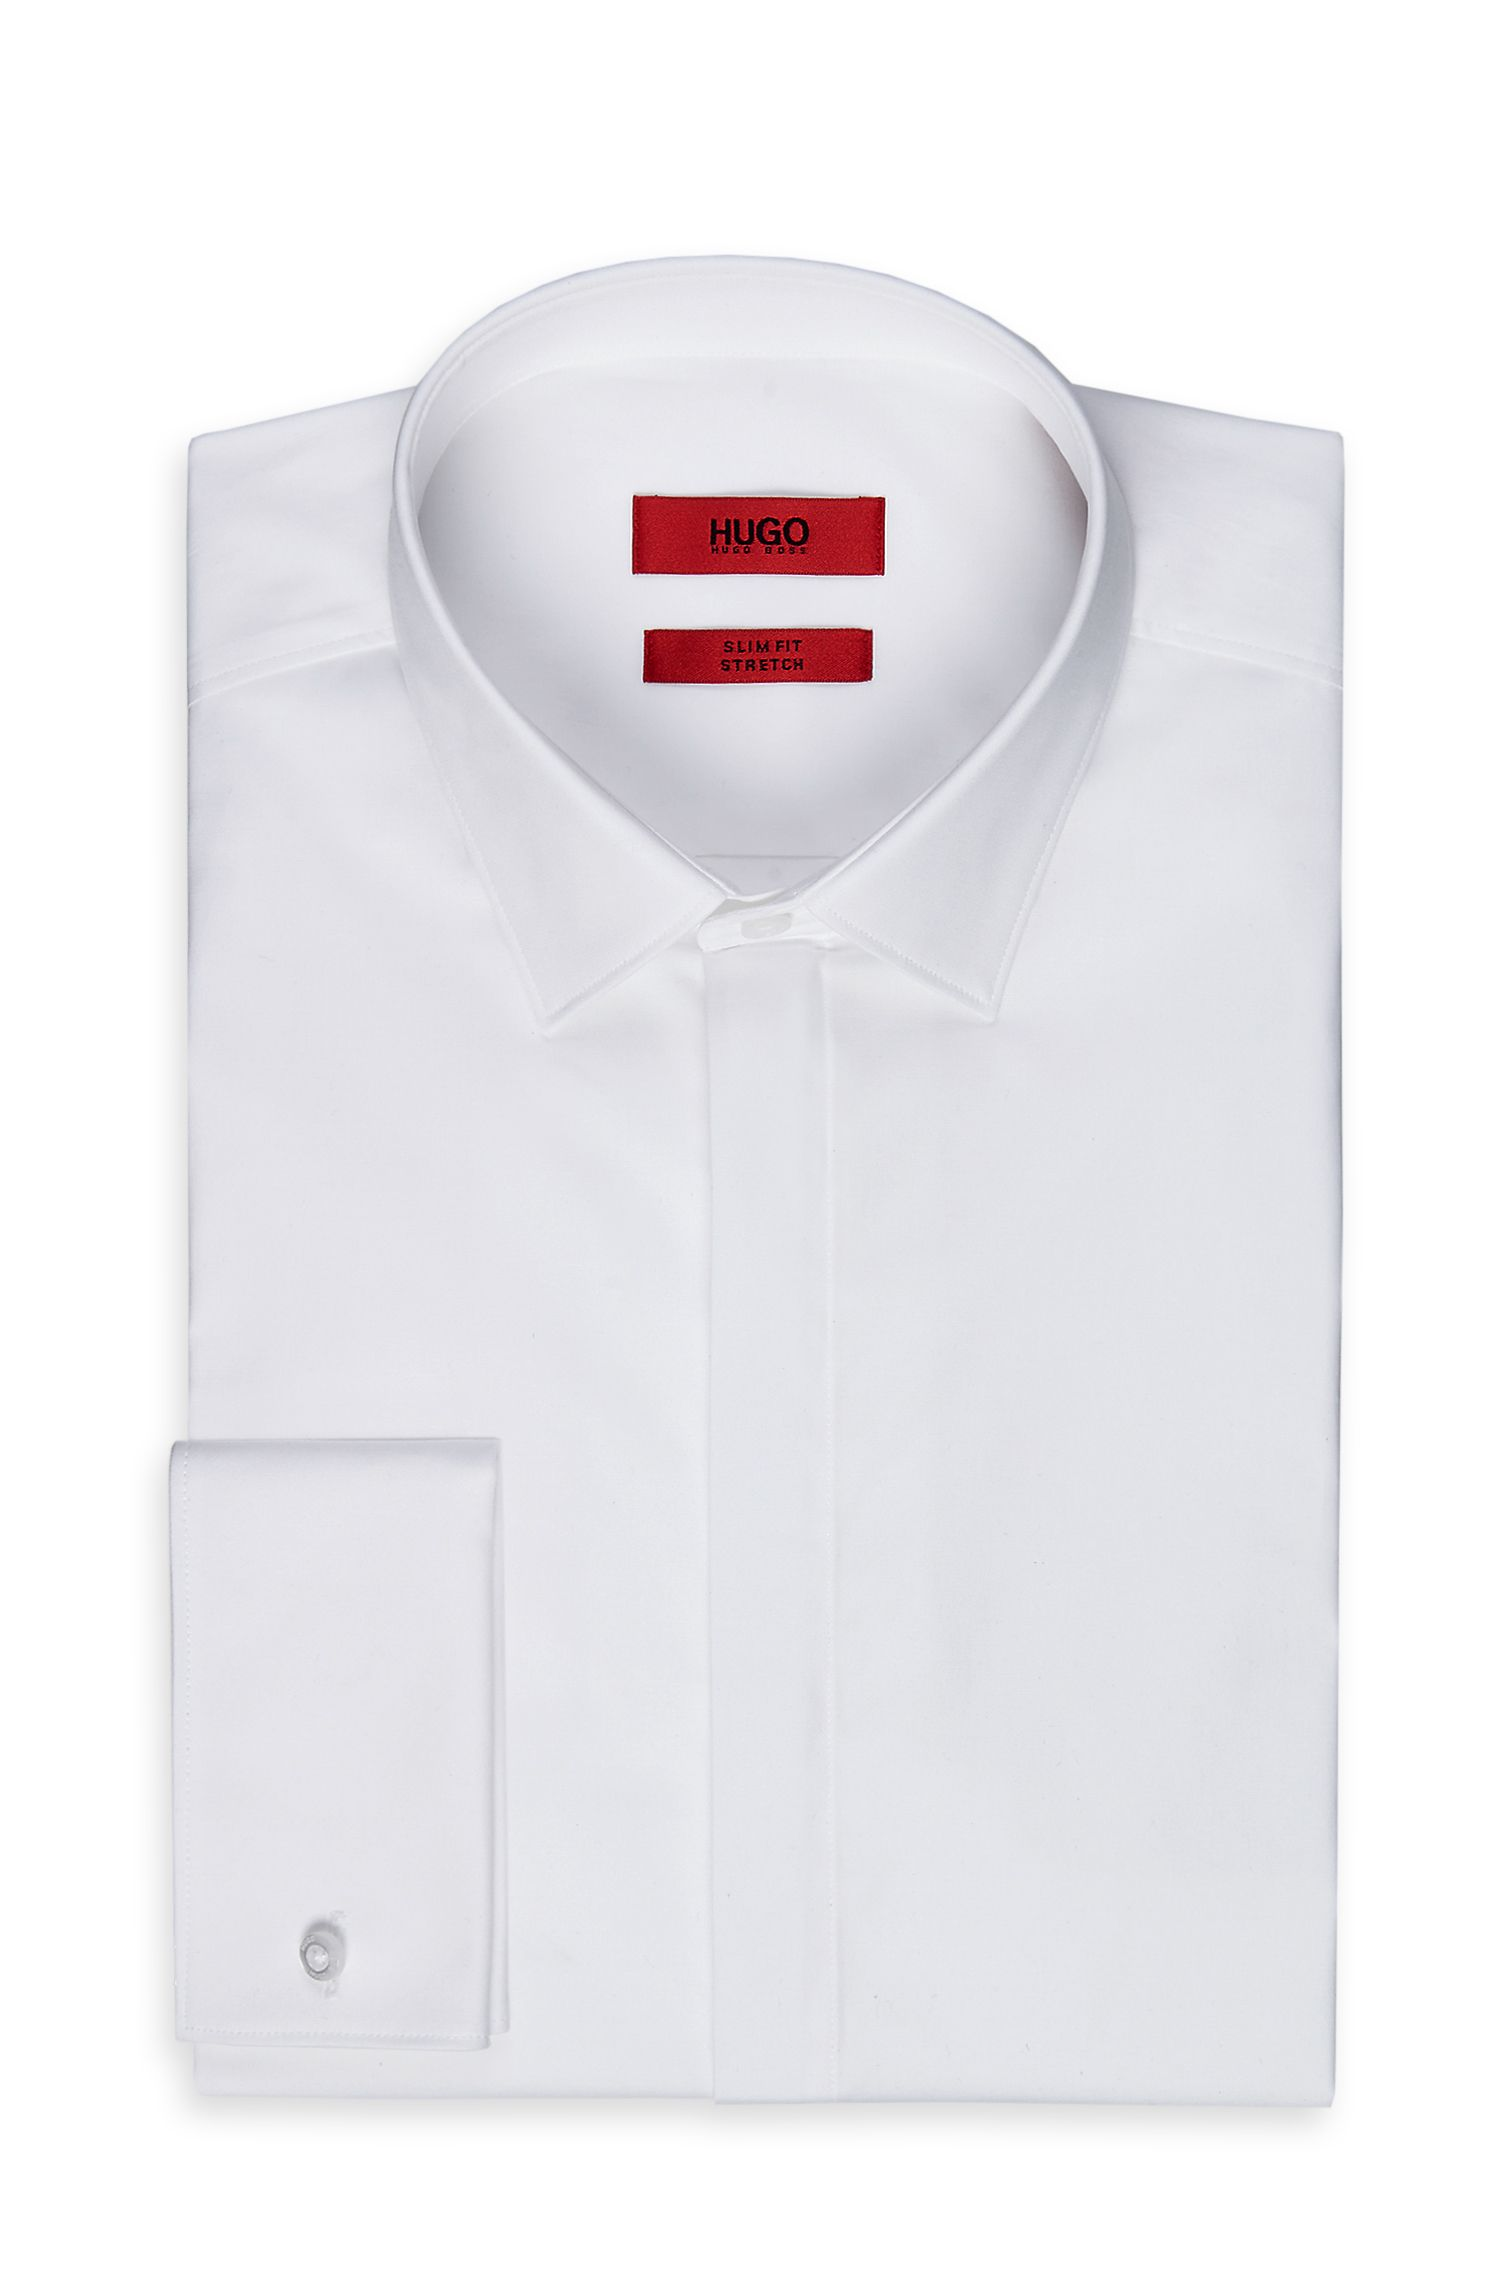 'EVENINGX' | Slim Fit, Point Collar Stretch Cotton French Cuff Dress Shirt